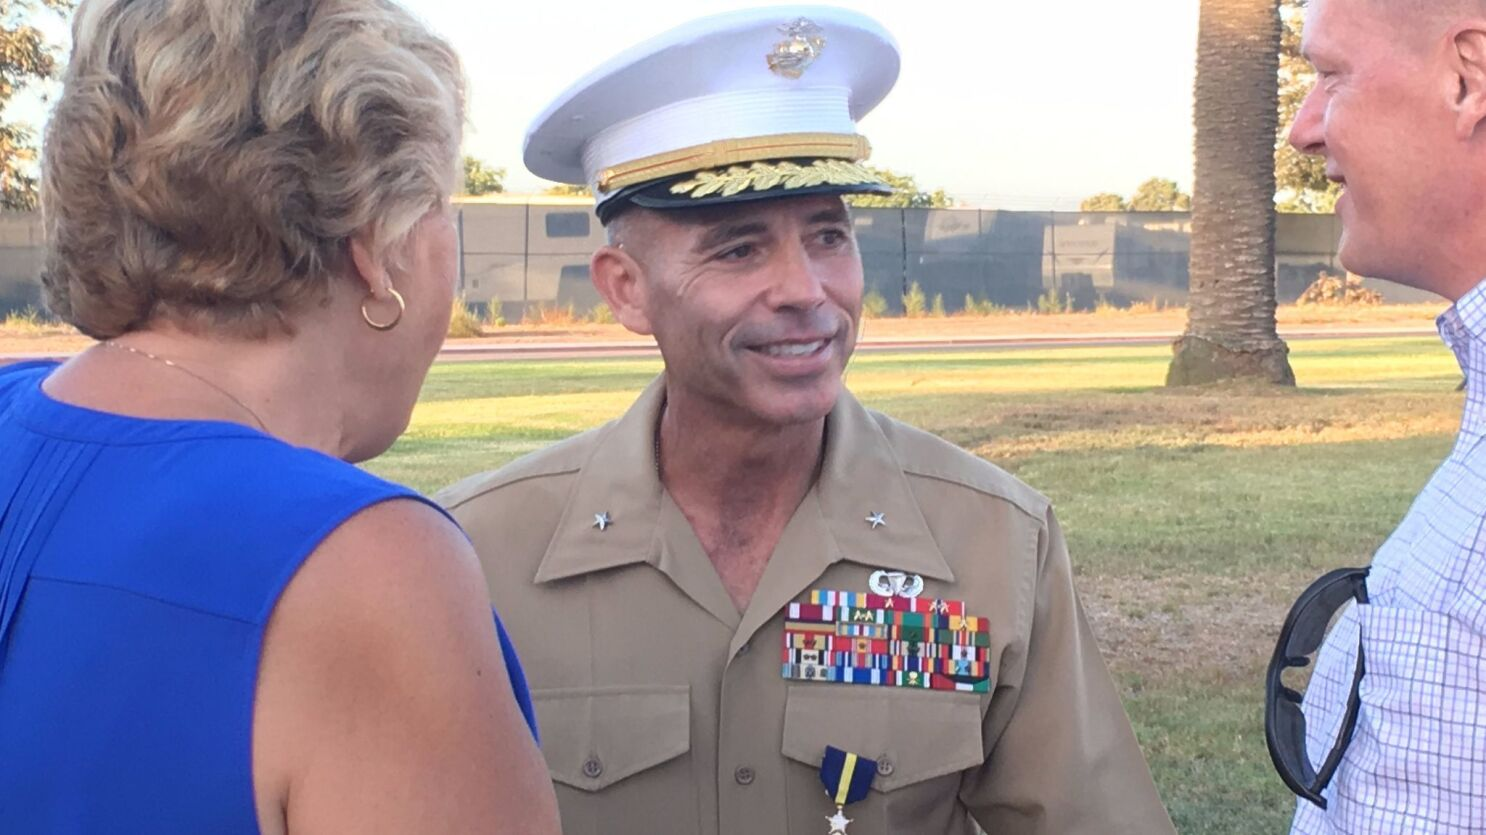 From private to one-star, Marine retires in honor - The San Diego